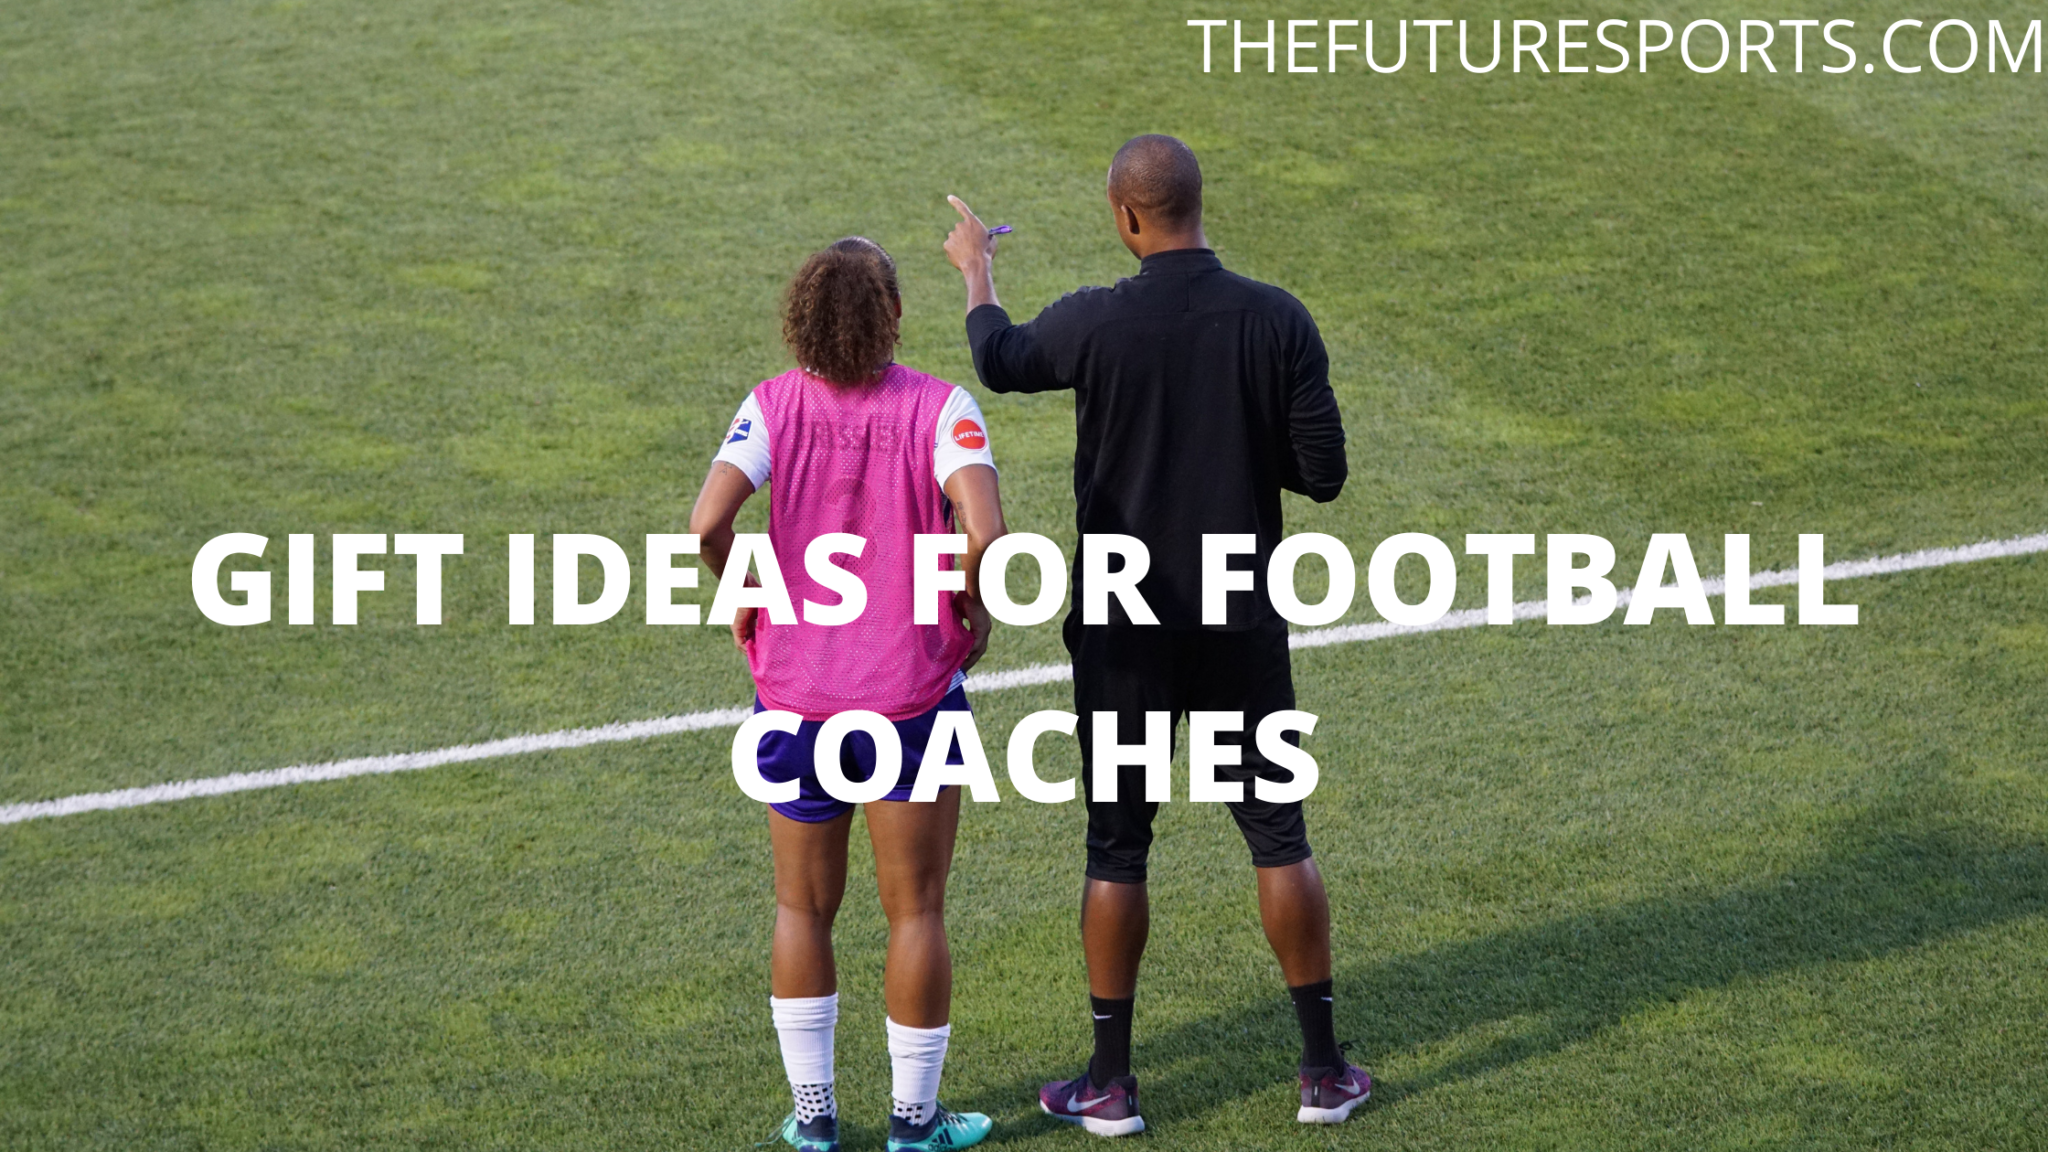 Cool gift ideas for football coaches